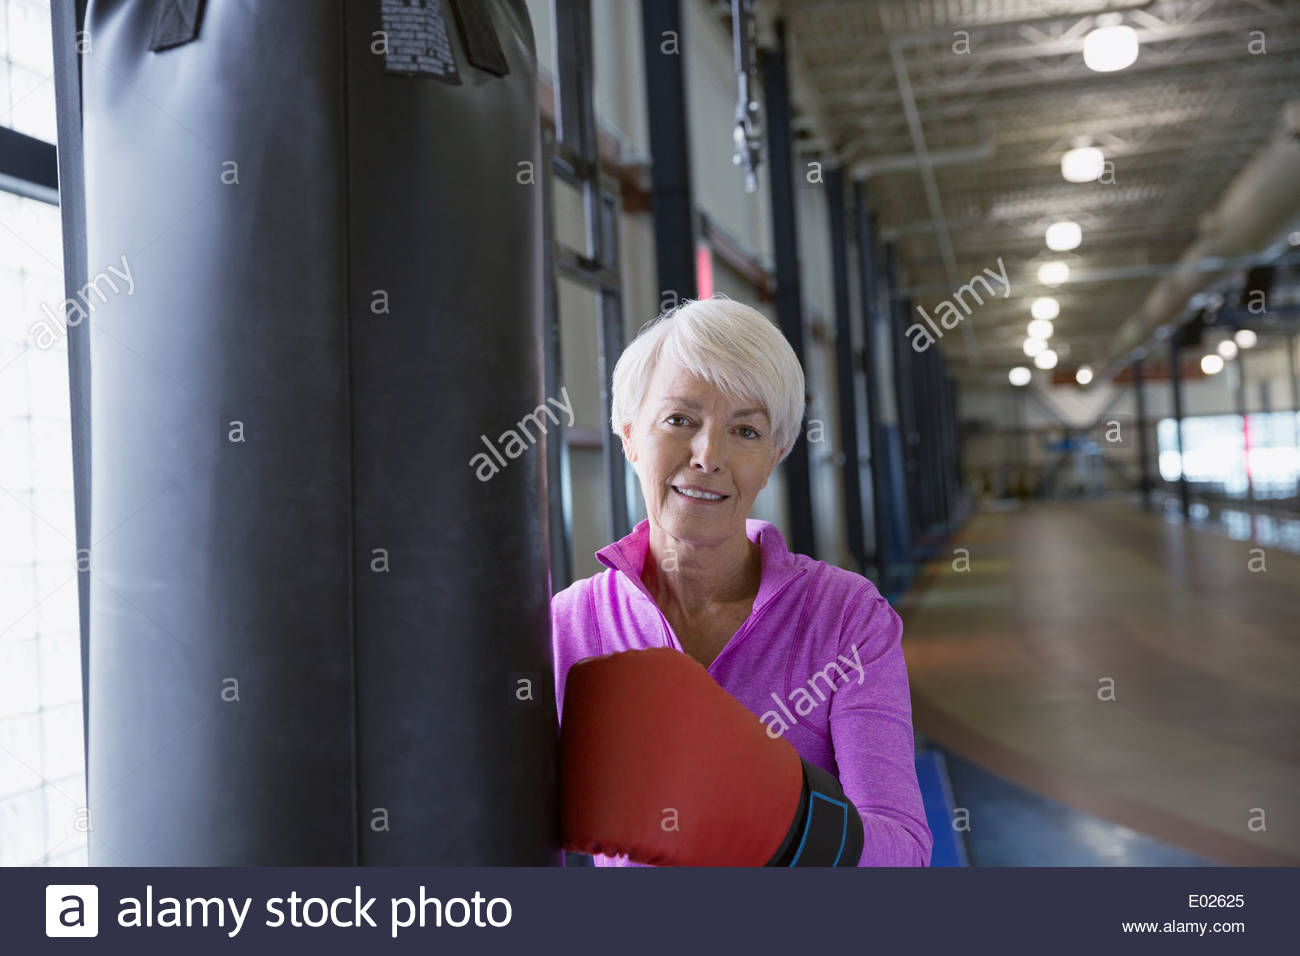 Portrait of smiling woman boxing at gym - Stock Image